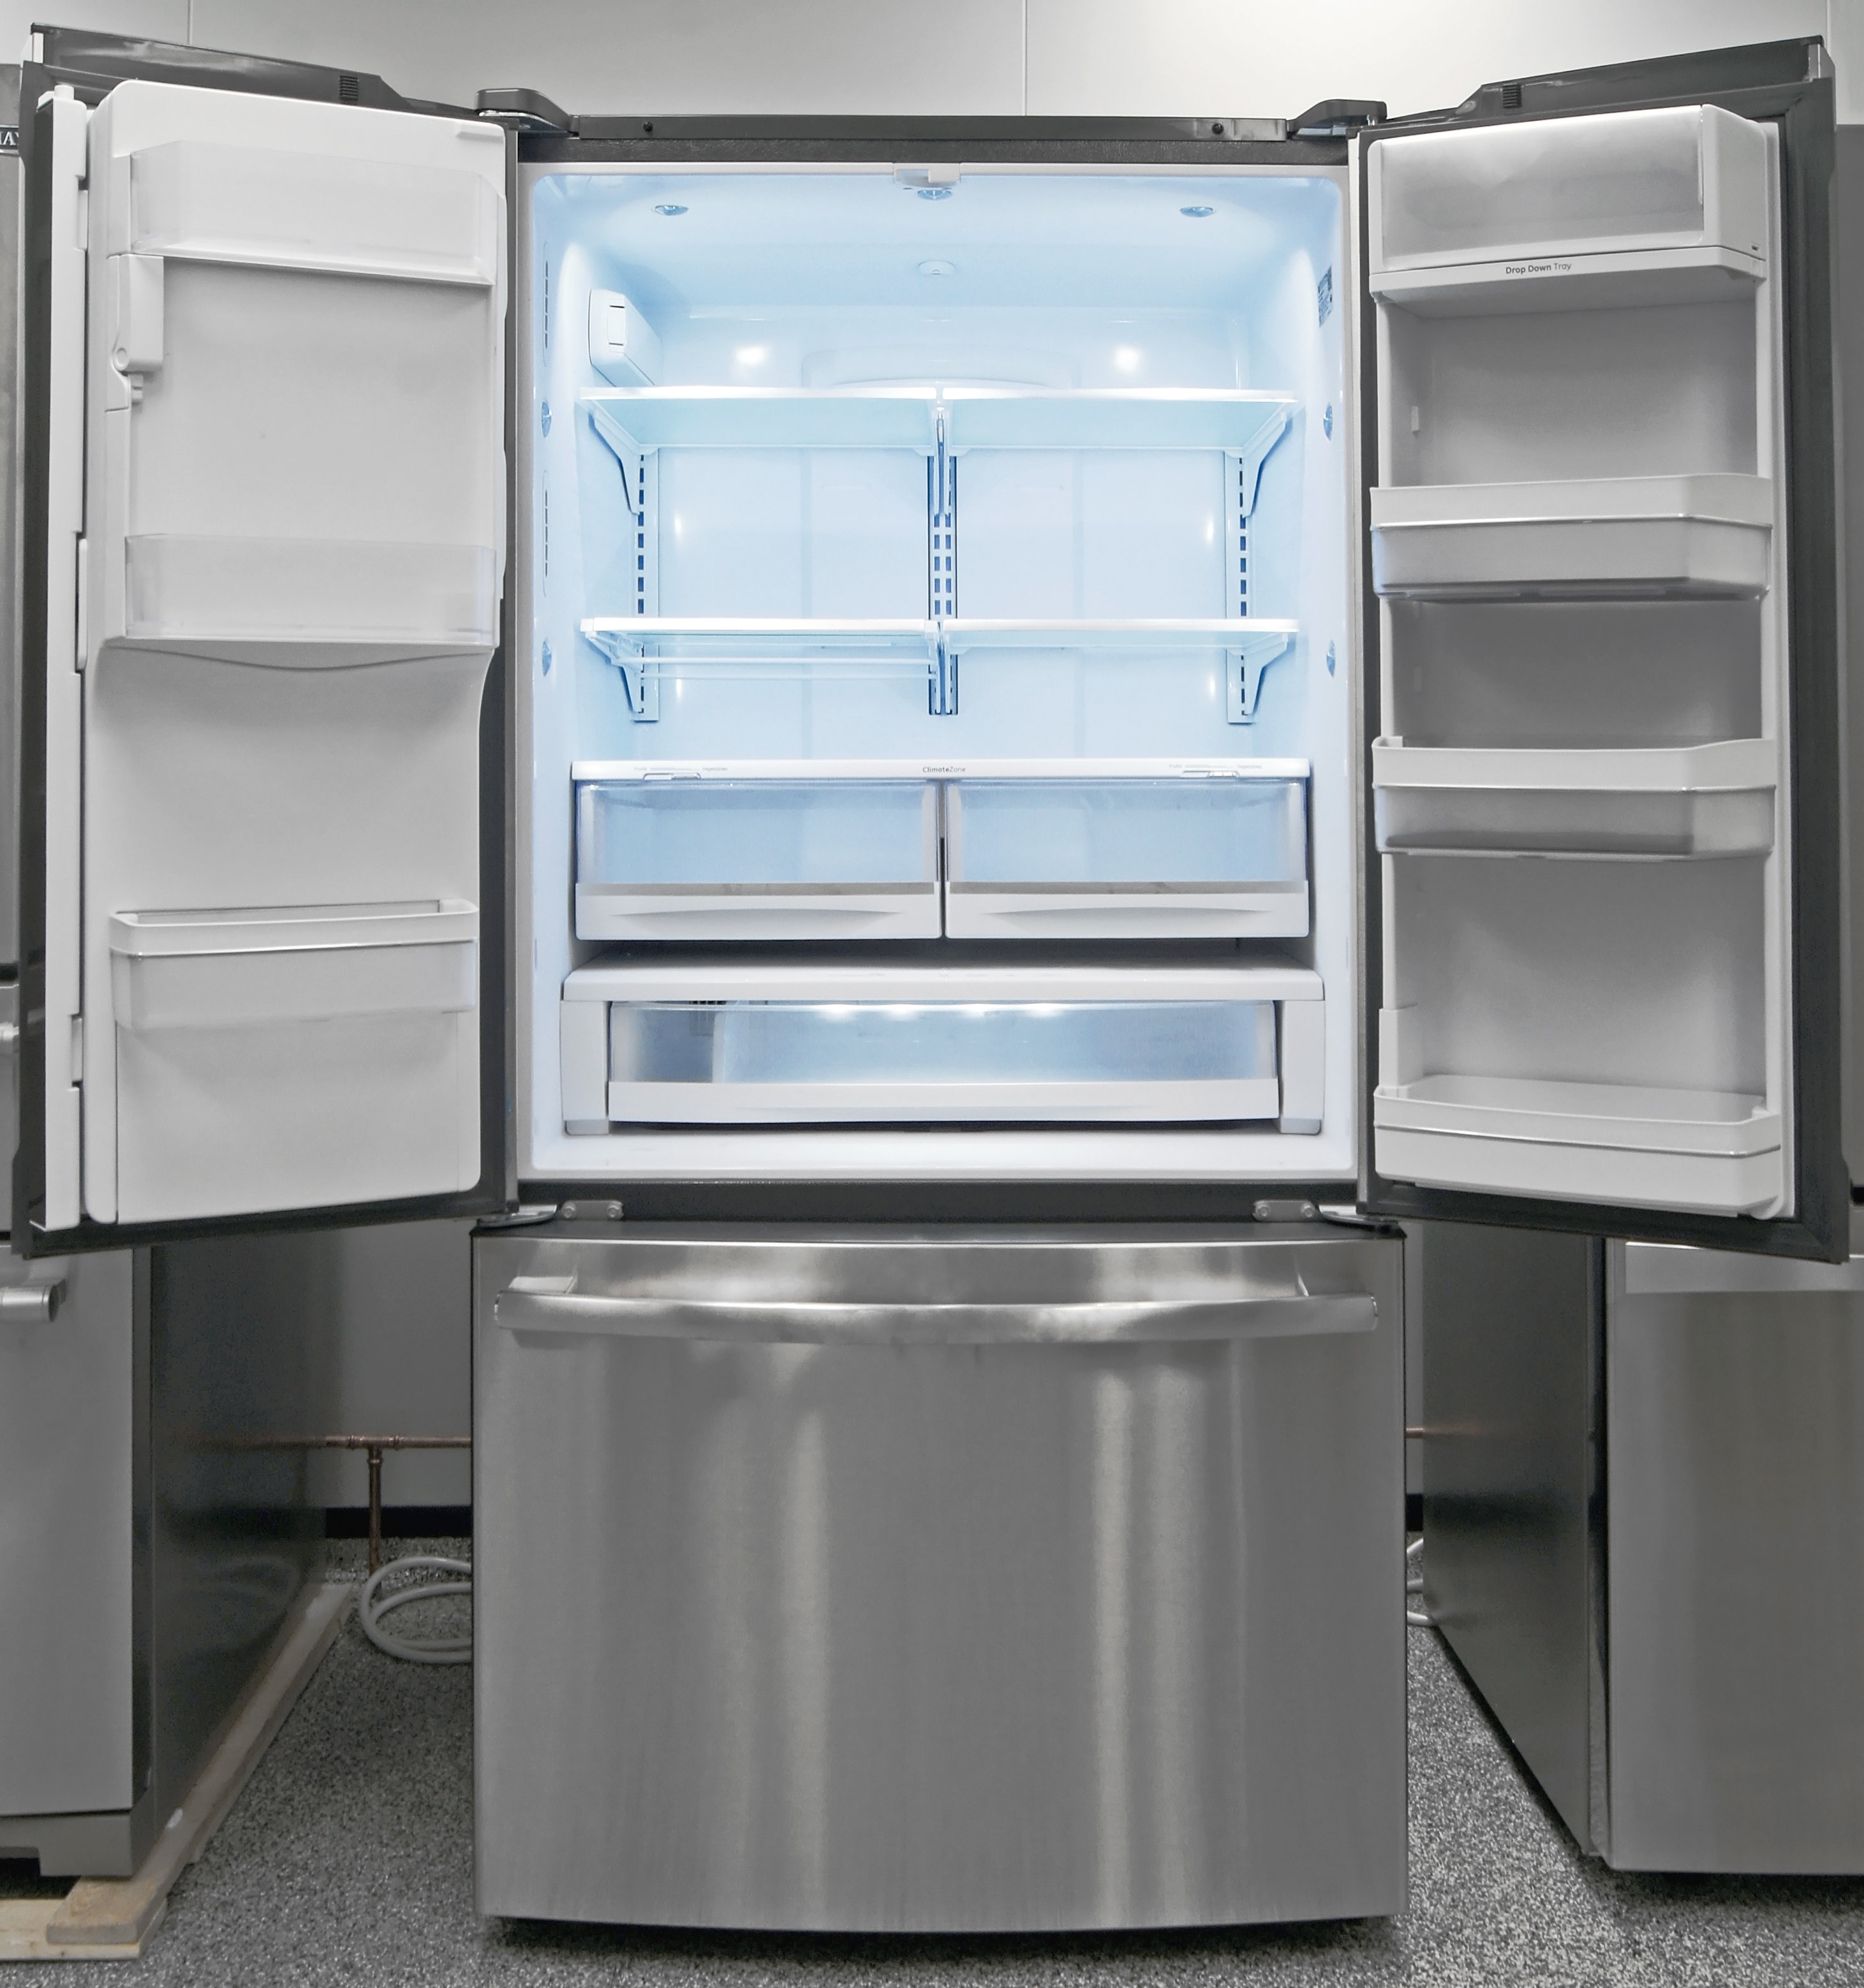 The GE Profile PFE28RSHSS is one of the manufacturer's best—and largest—fridges on the market.